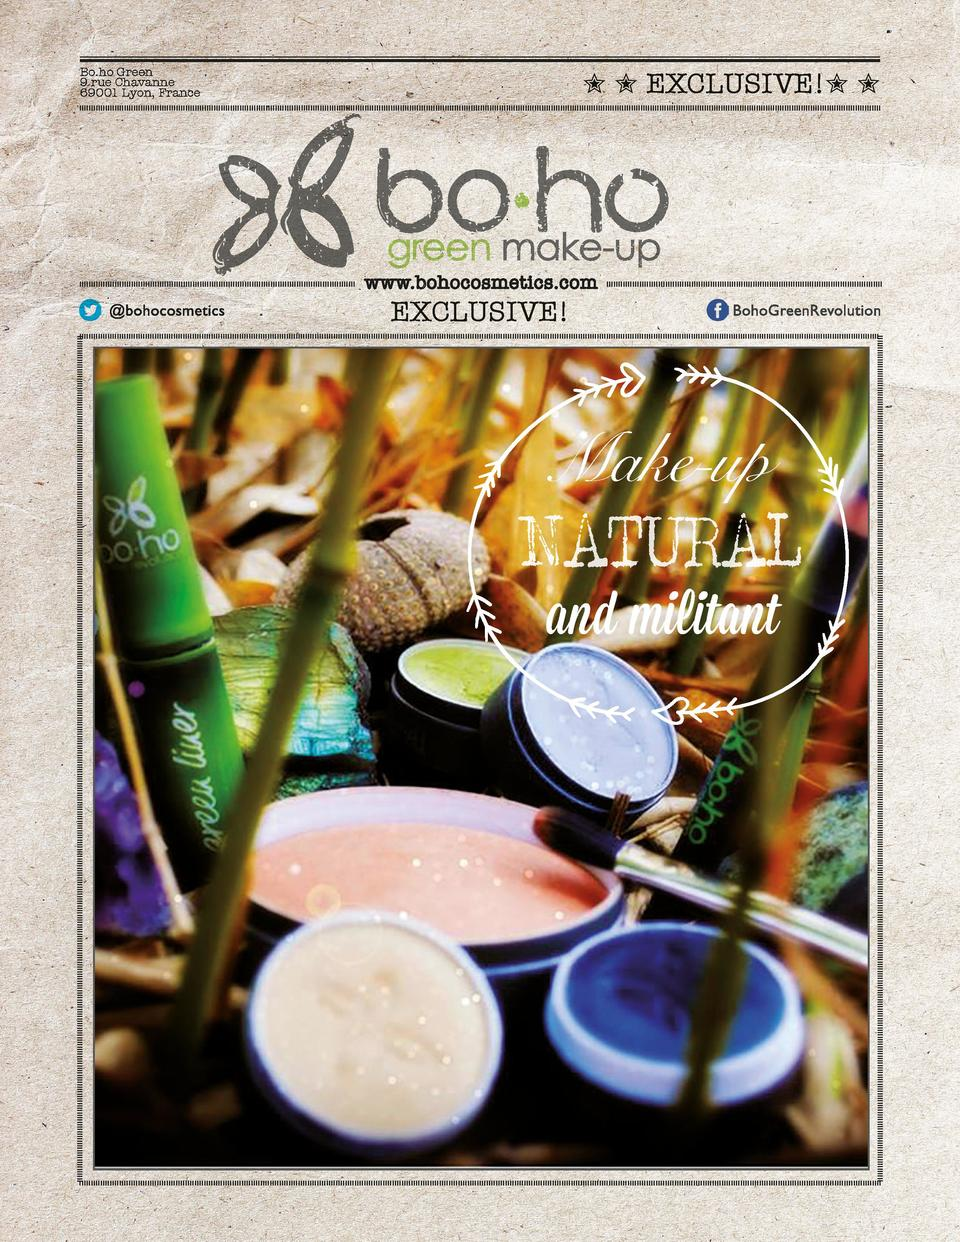 EXCLUSIVE          Bo.ho Green 9 rue Chavanne 69001 Lyon, France  www.bohocosmetics.com  EXCLUSIVE   Make-up  NATU...